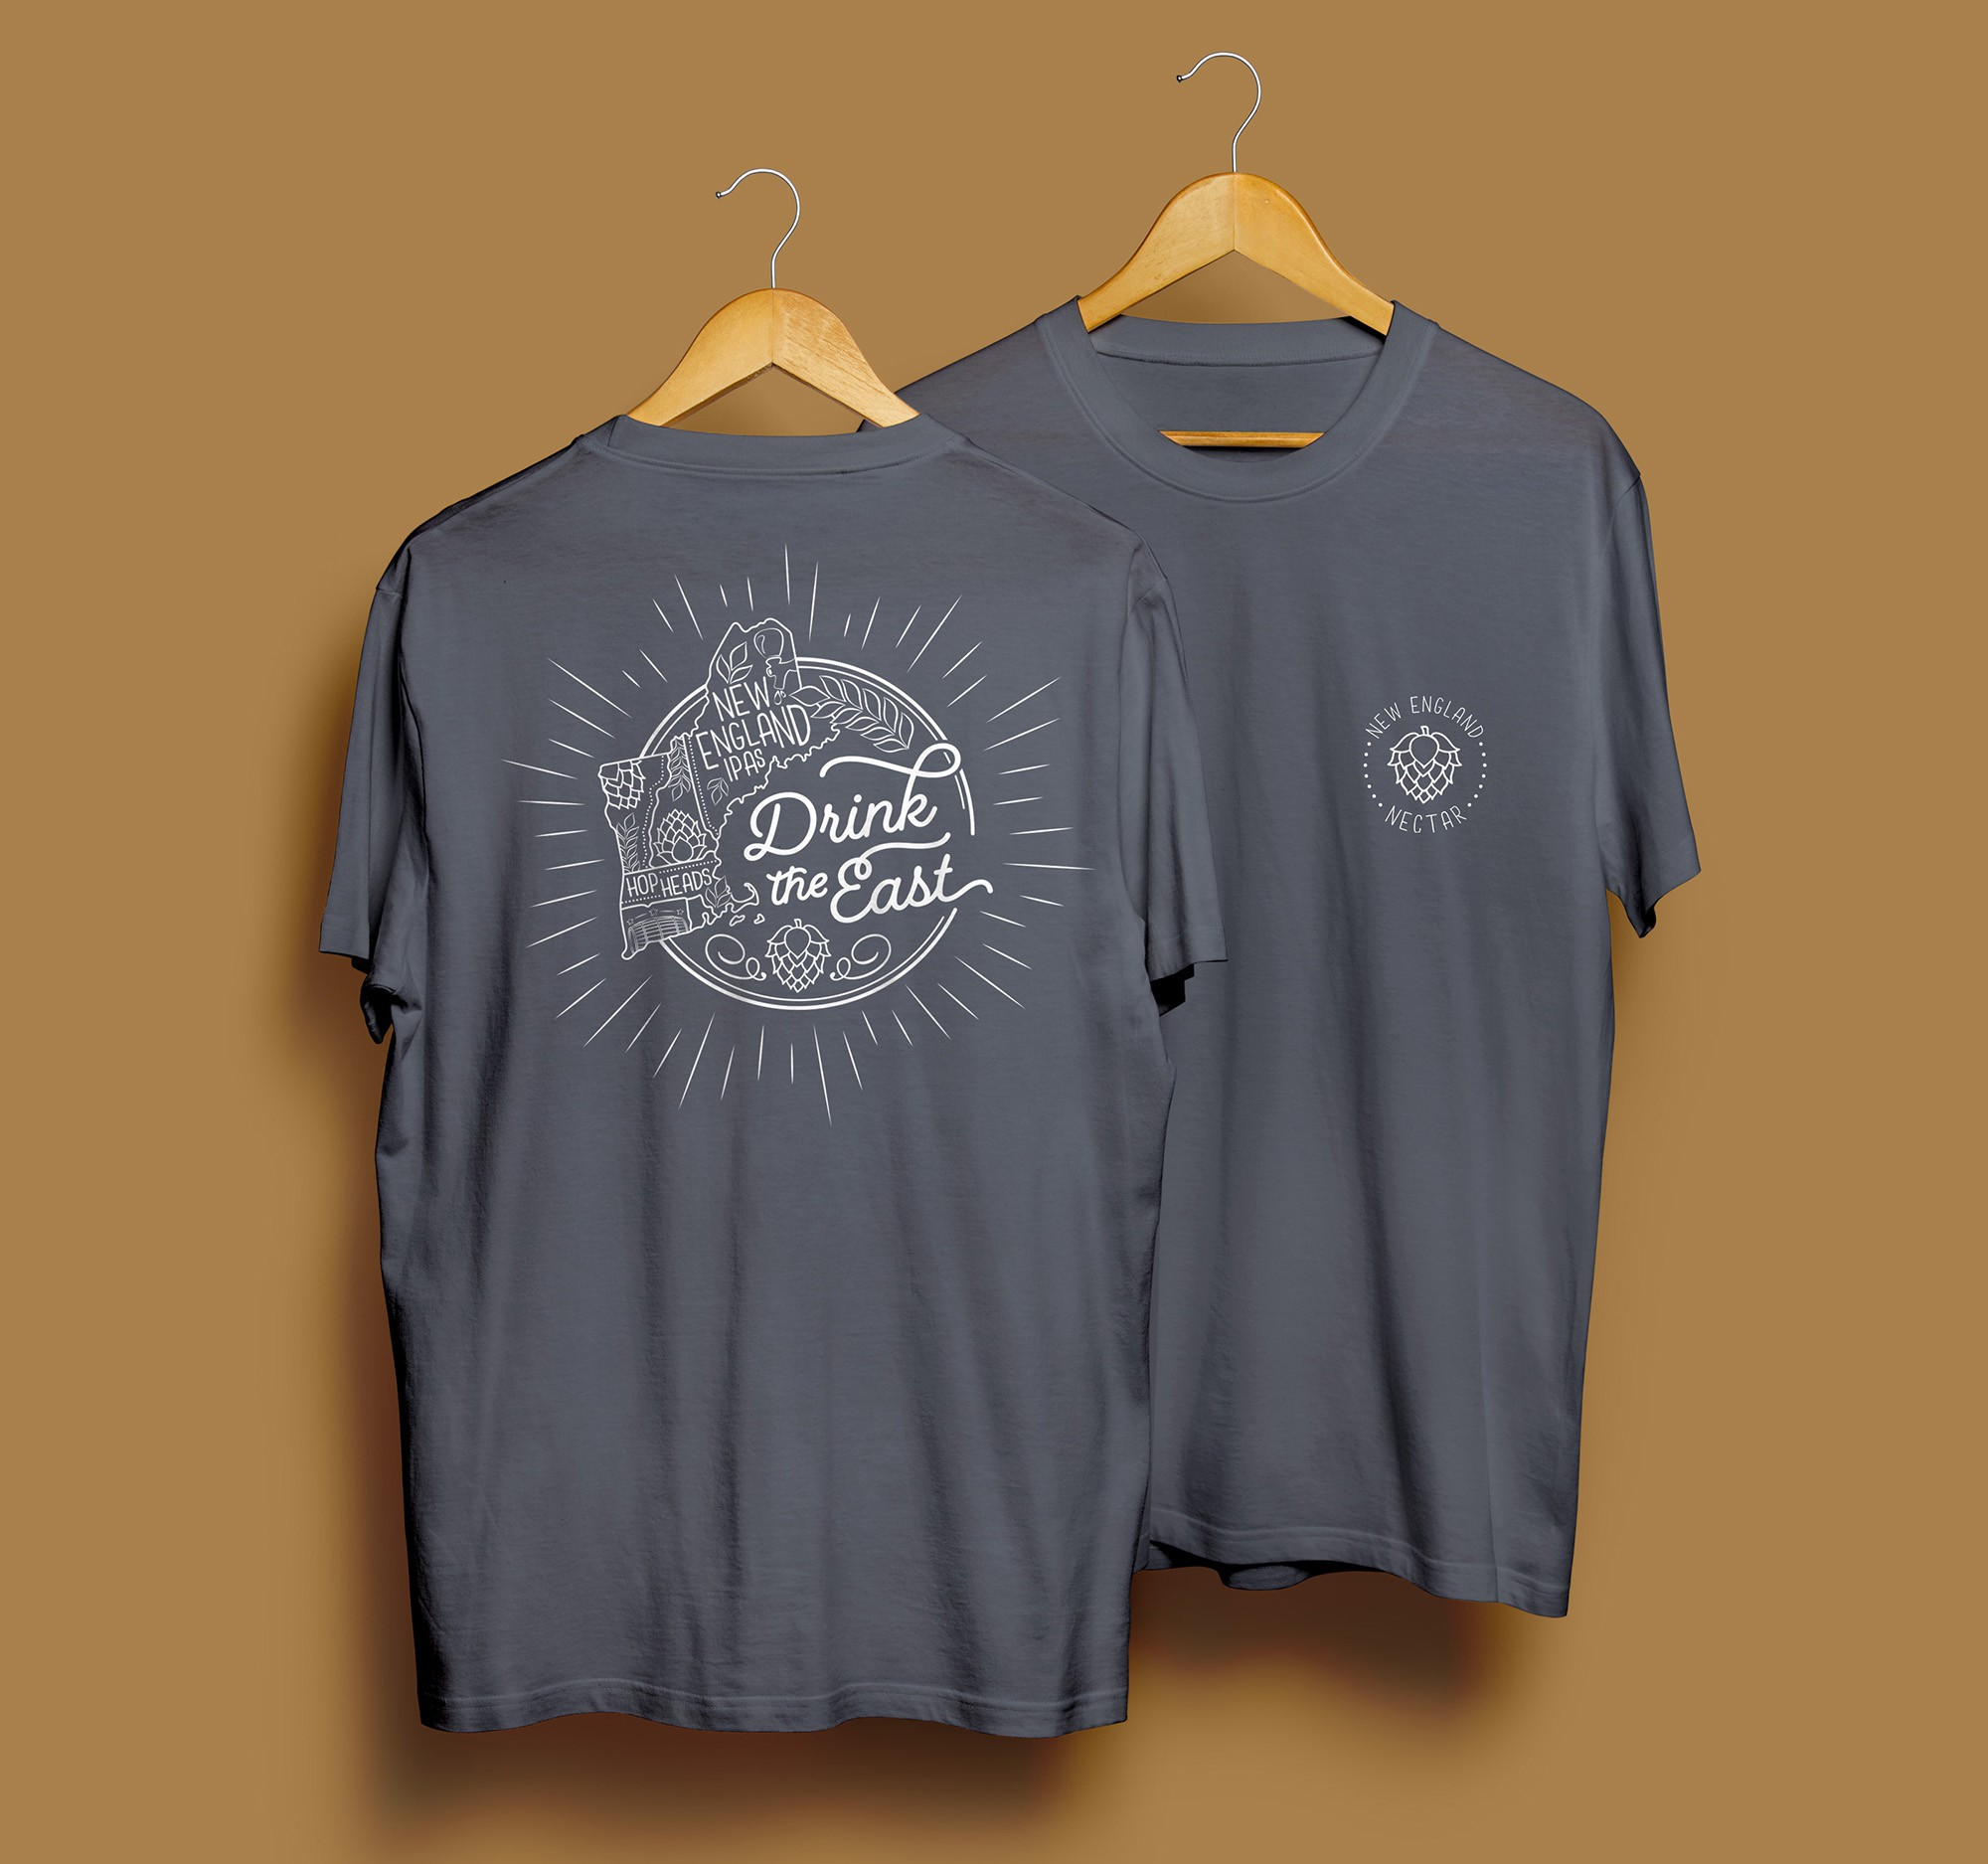 DRINK THE EAST - New England IPA T-Shirt